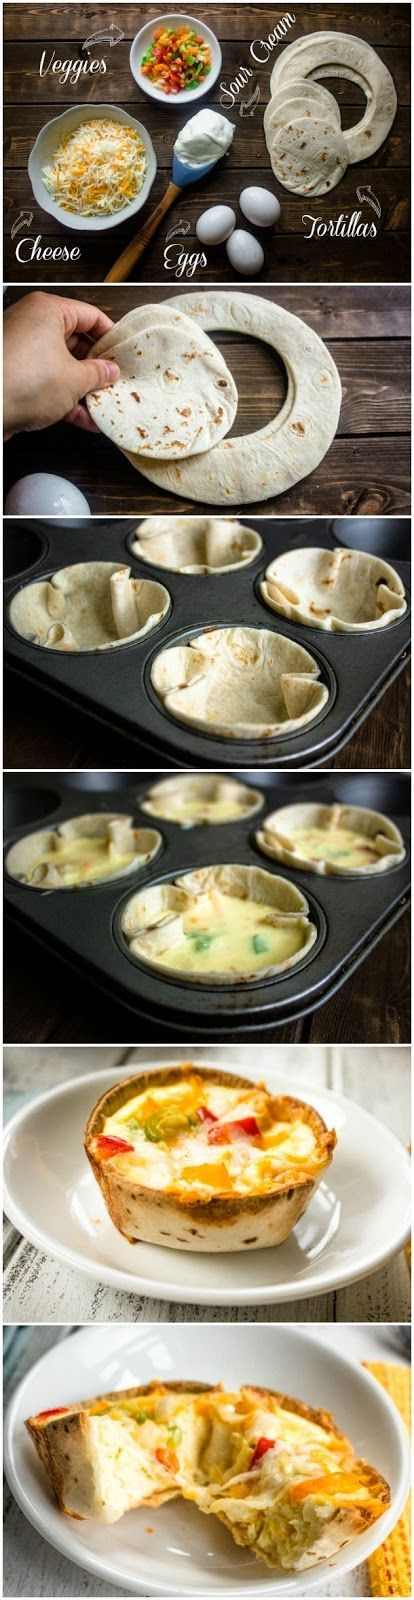 Mini Egg and Cheese Tortilla Cups, Great Recipe!